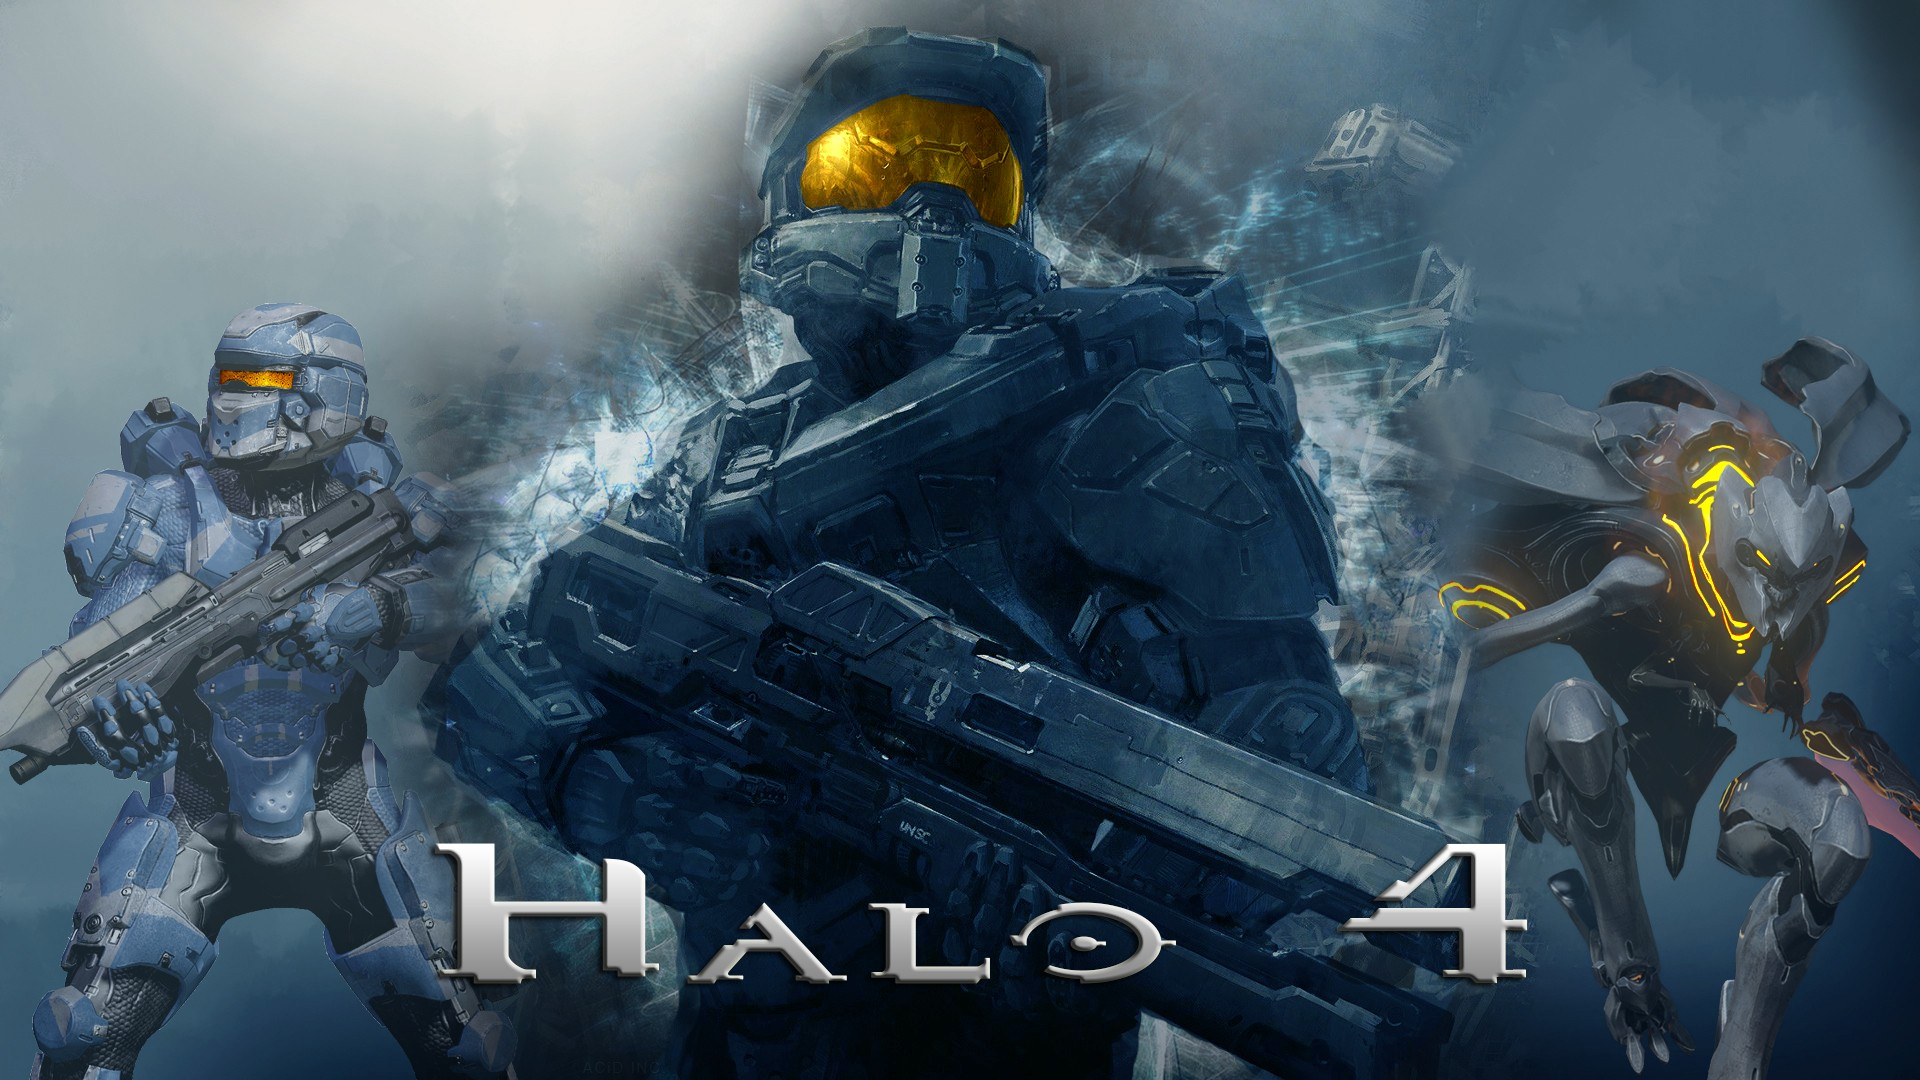 Halo Master Chief 4 Forerunner Promethean Spartan IV Wallpaper